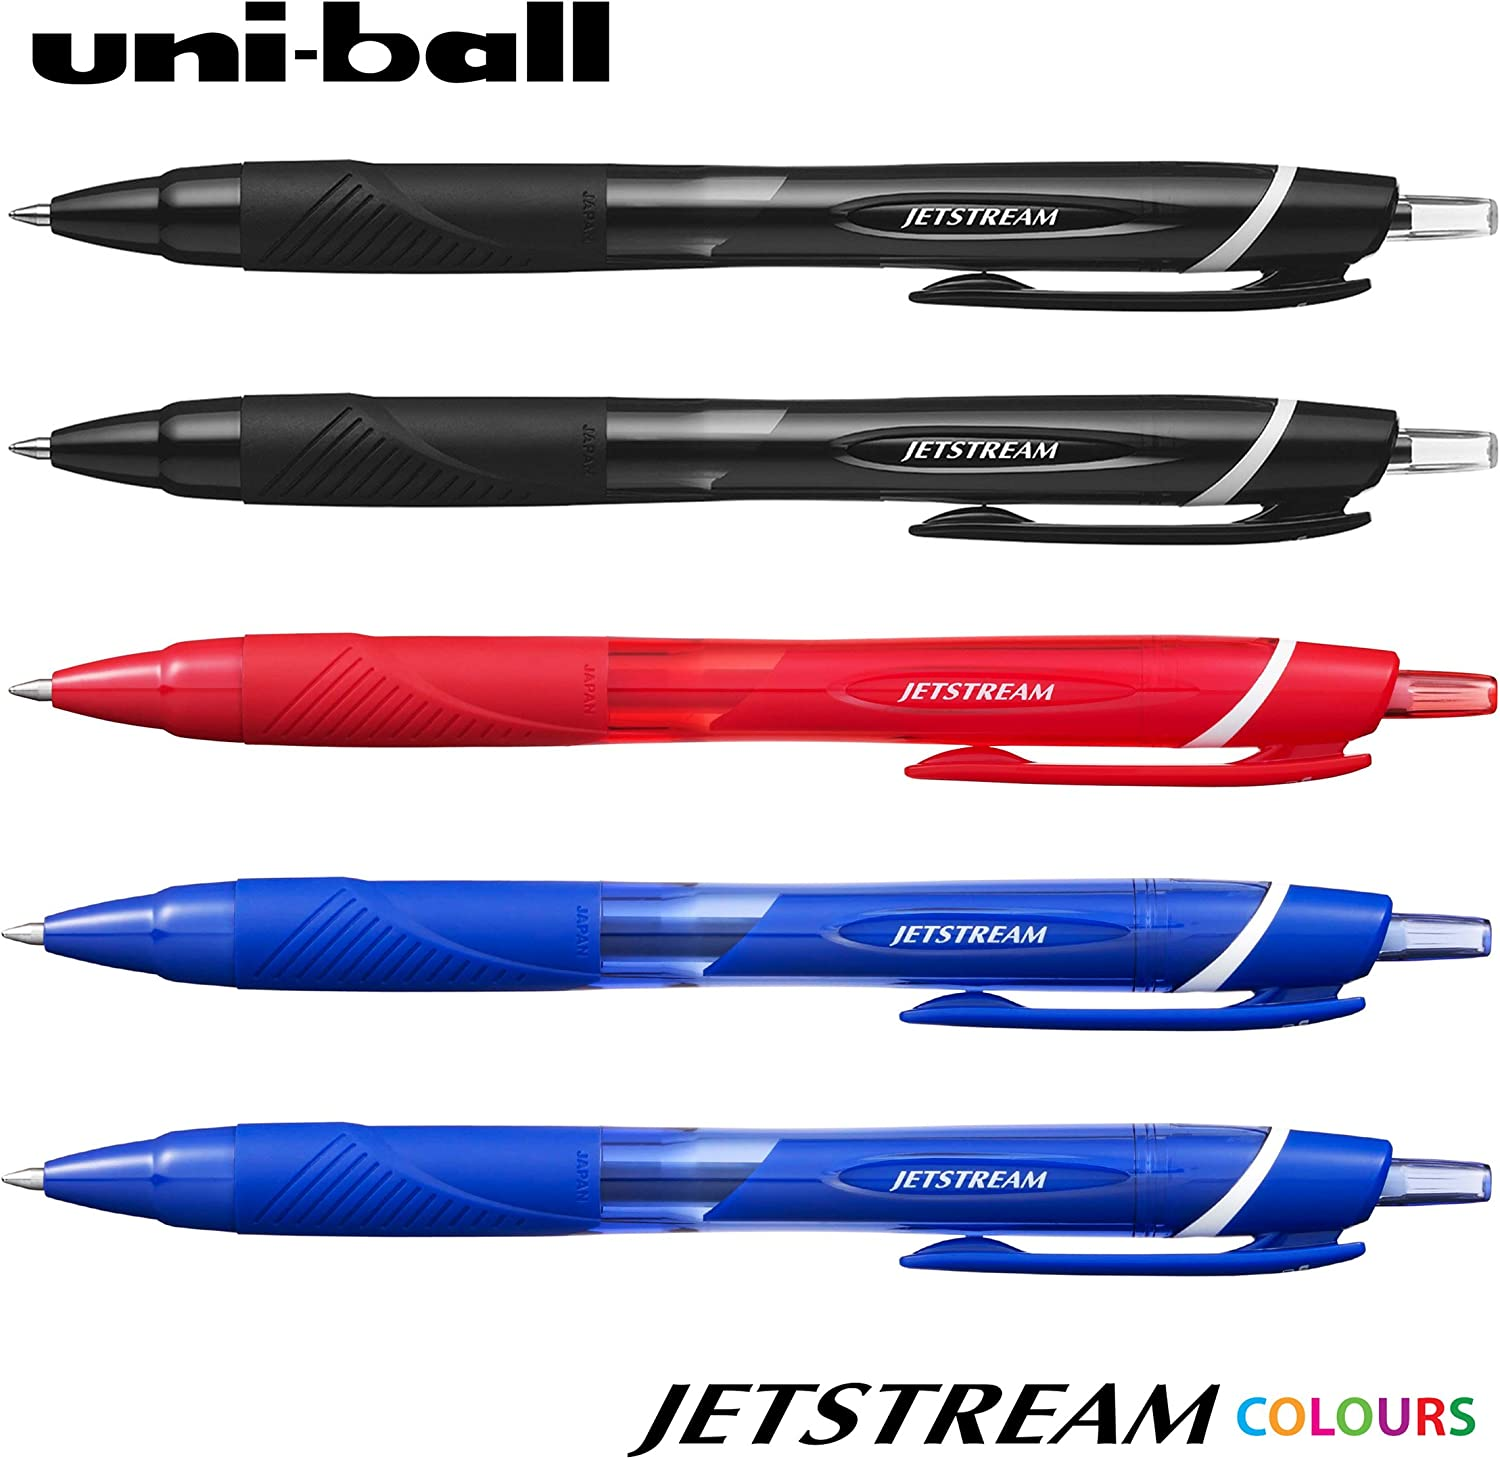 10 x Uni-Ball Jetstream Retractable Rollerball SXN-150 07 Black Ink